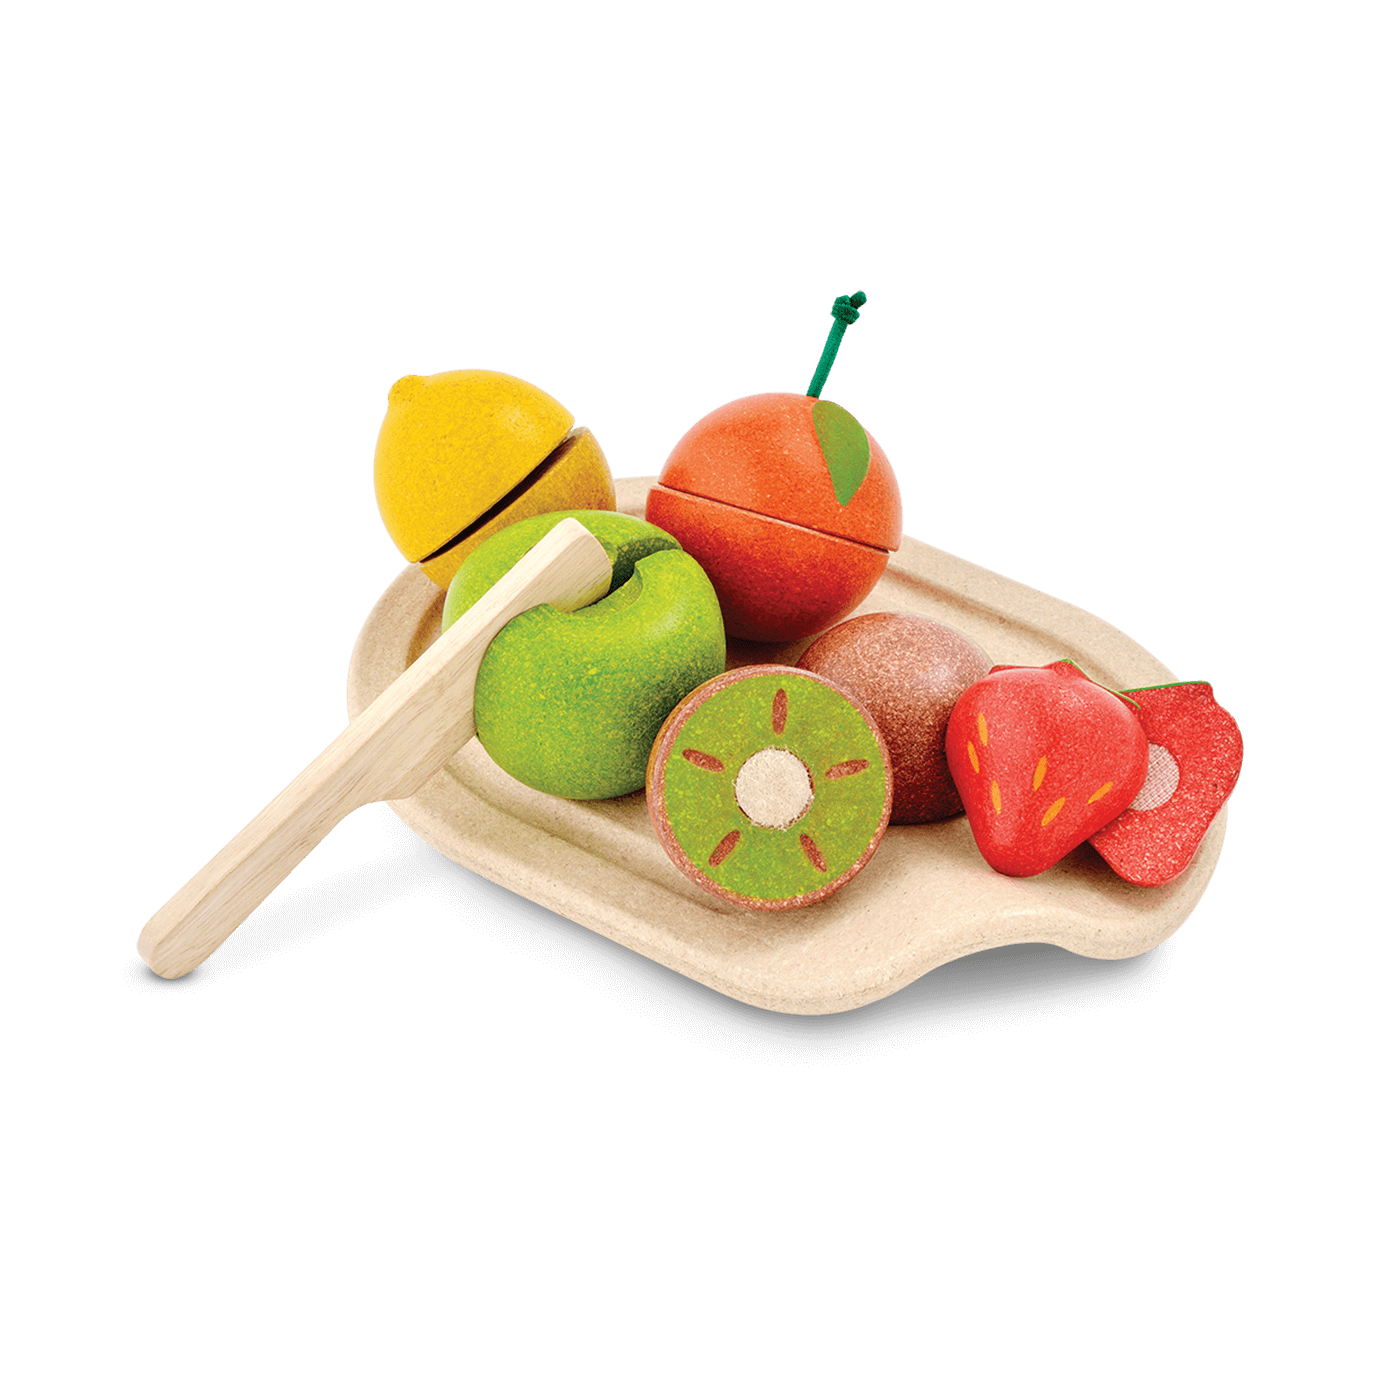 3600_PlanToys_ASSORTED_FRUIT_SET_Pretend_Play_Coordination_Concentration_Imagination_Language_and_Communications_Social_Fine_Motor_18m_Wooden_toys_Education_toys_Safety_Toys_Non-toxic_0.png